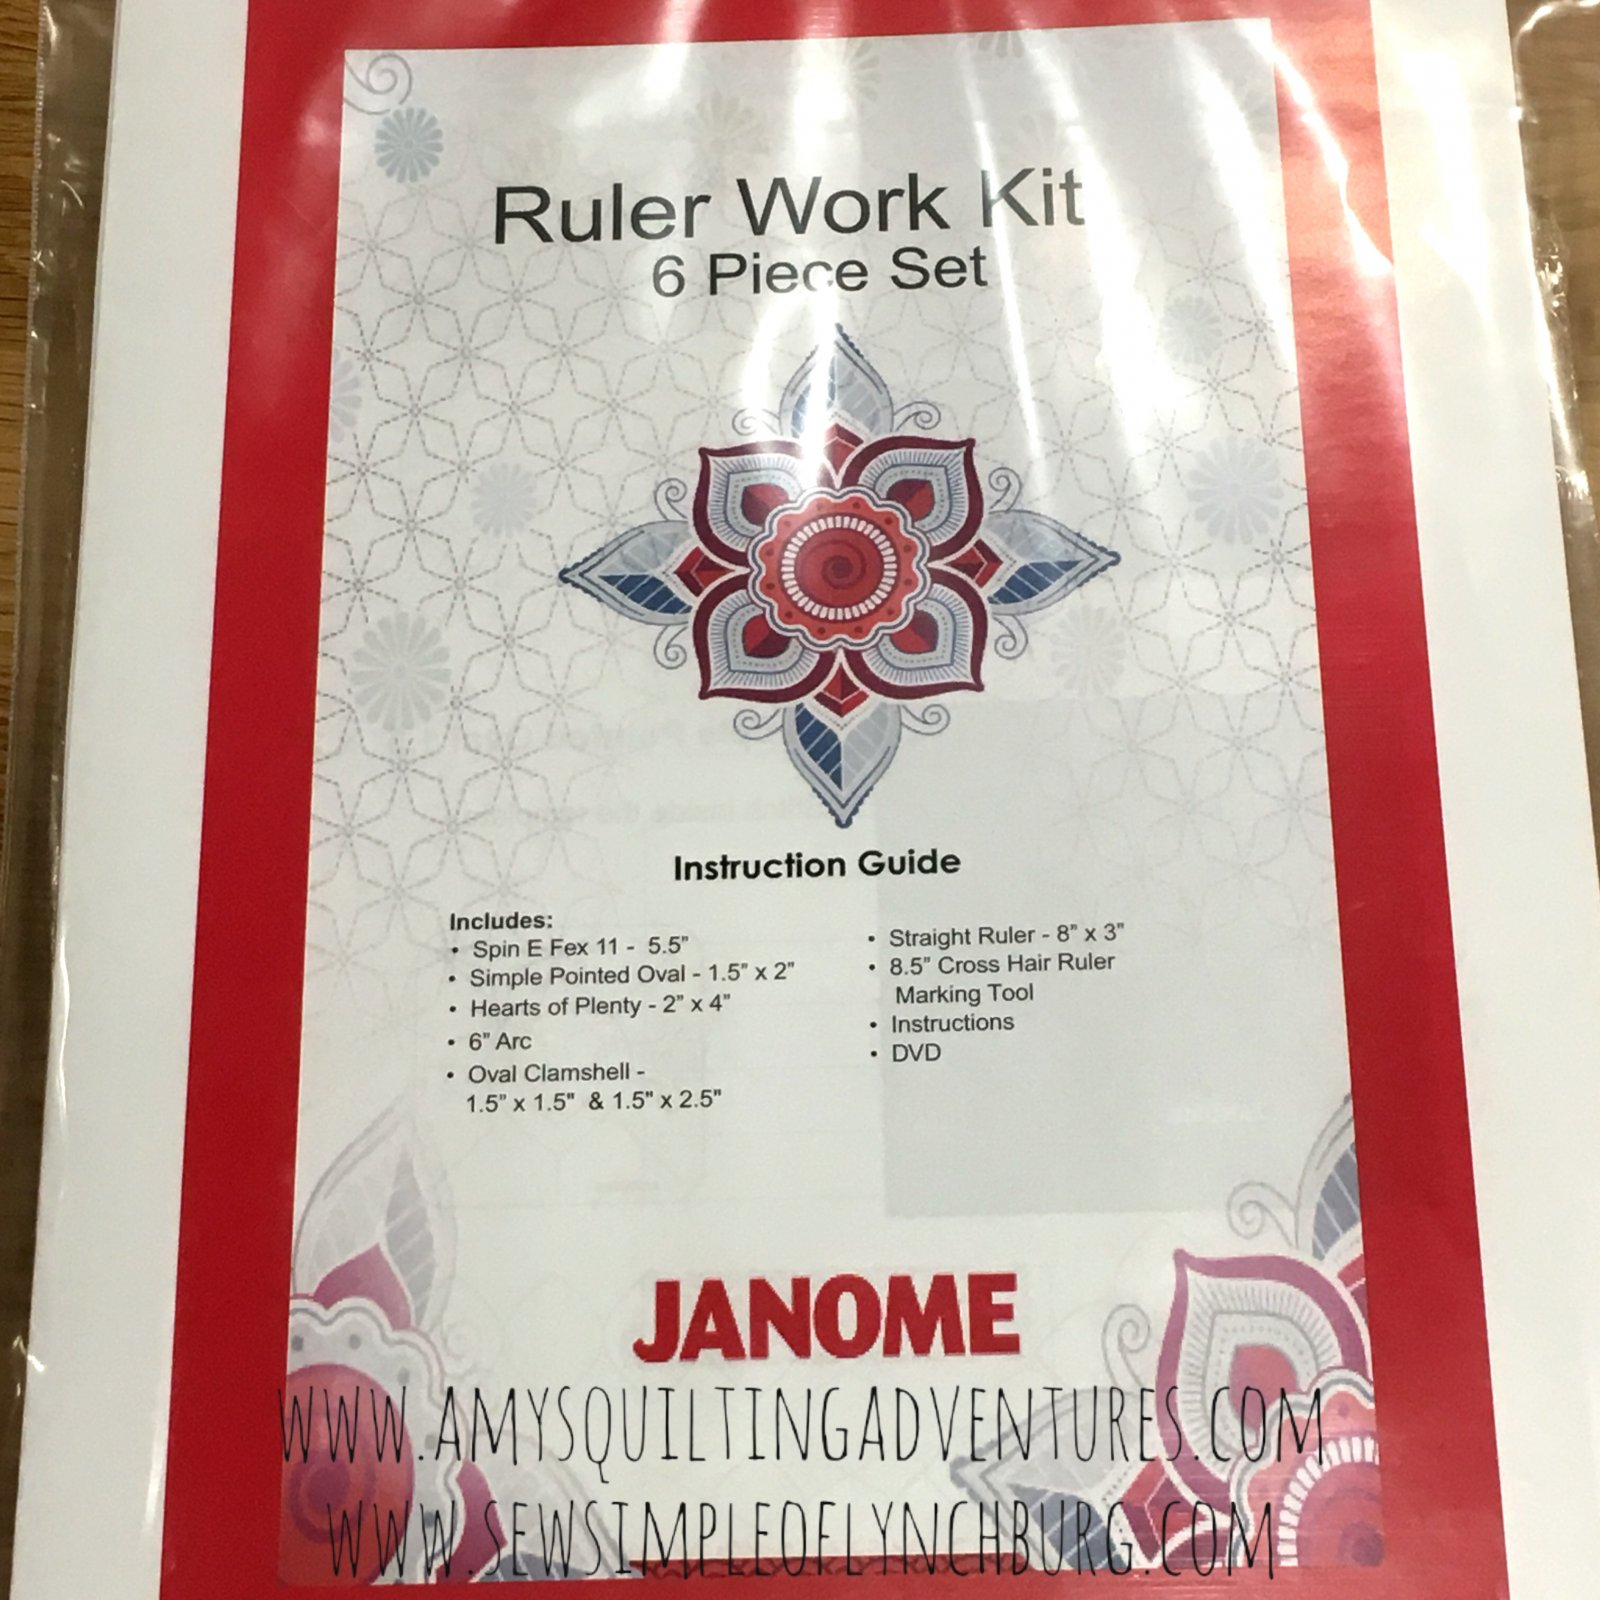 Janome Ruler Work Kit